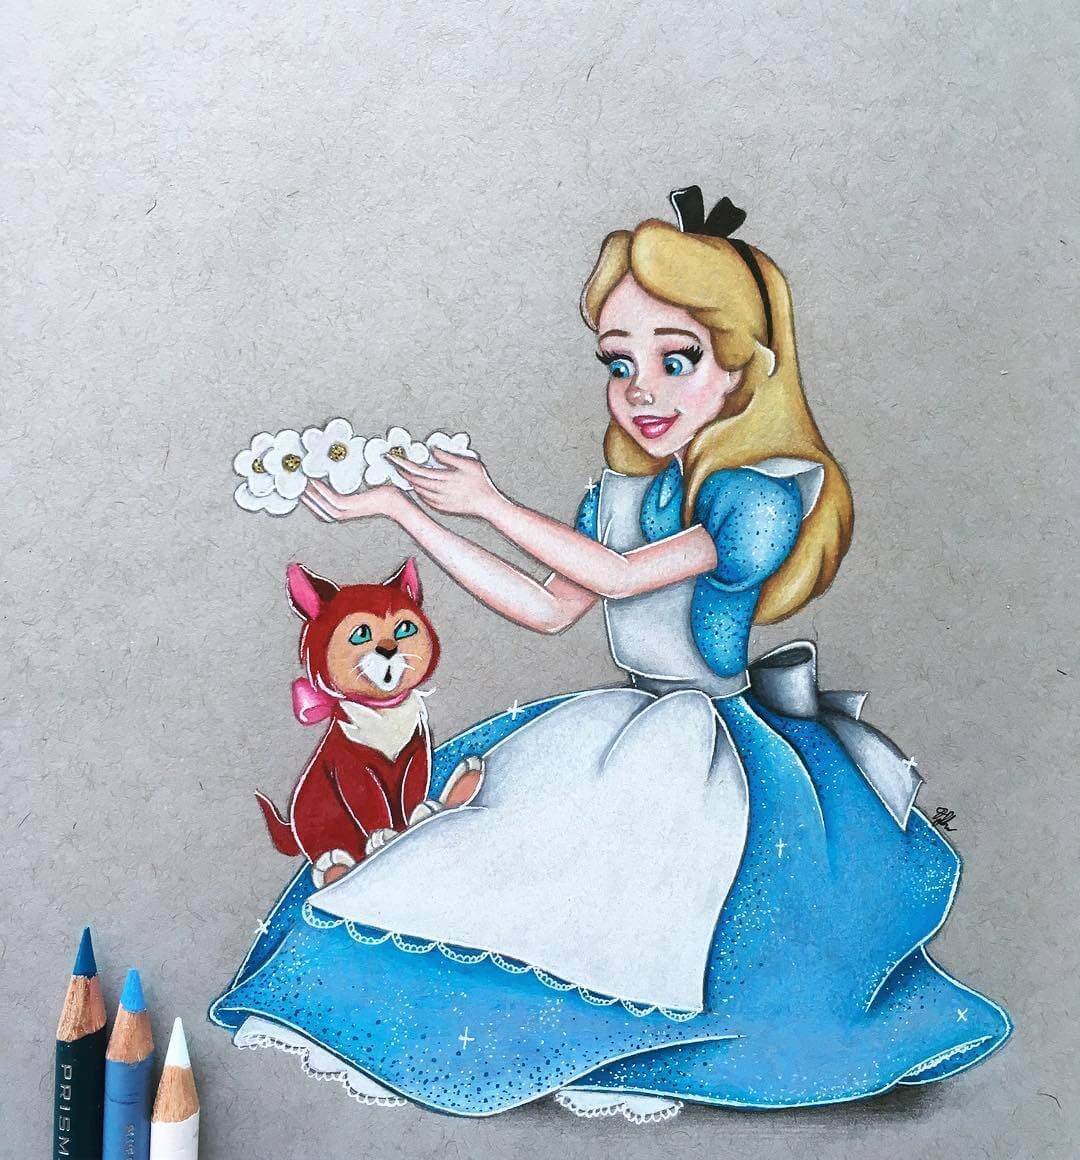 07-Alice-in-Wonderland-Tabitha-Cartoon-and-Animation-Characters-in-Drawings-www-designstack-co